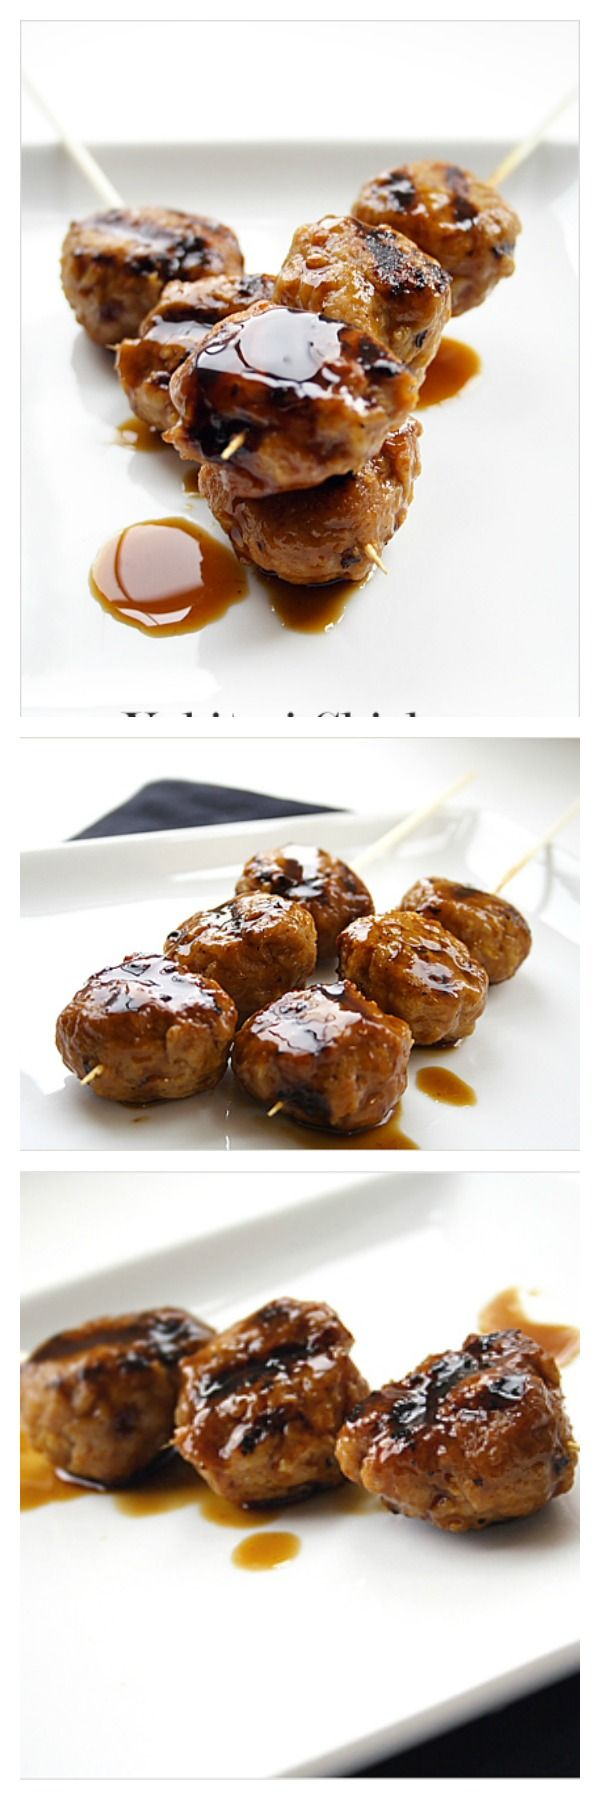 Teriyaki Chicken Meat Balls. Juicy and yummylicious meat balls with sweet and savory teriyaki sauce. Amazing taste and you can't stop eating! rasamalaysia.com